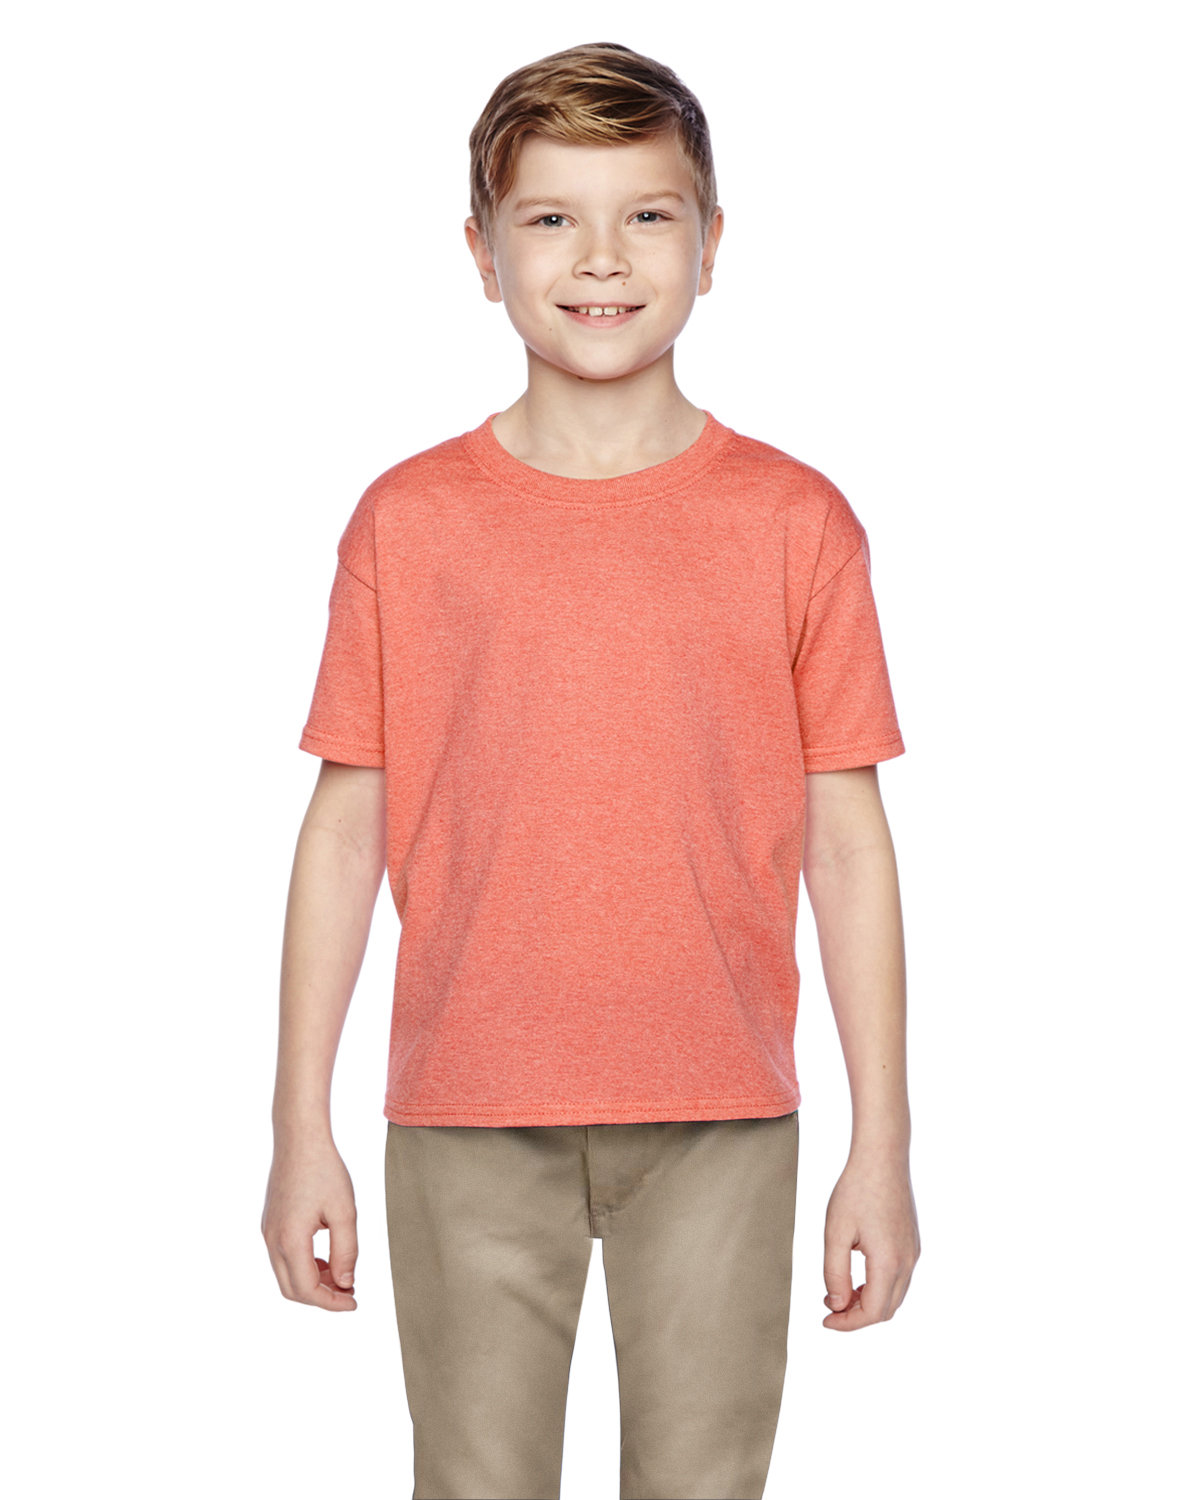 Fruit of the Loom Youth HD Cotton™ T-Shirt RETRO HTH CORAL